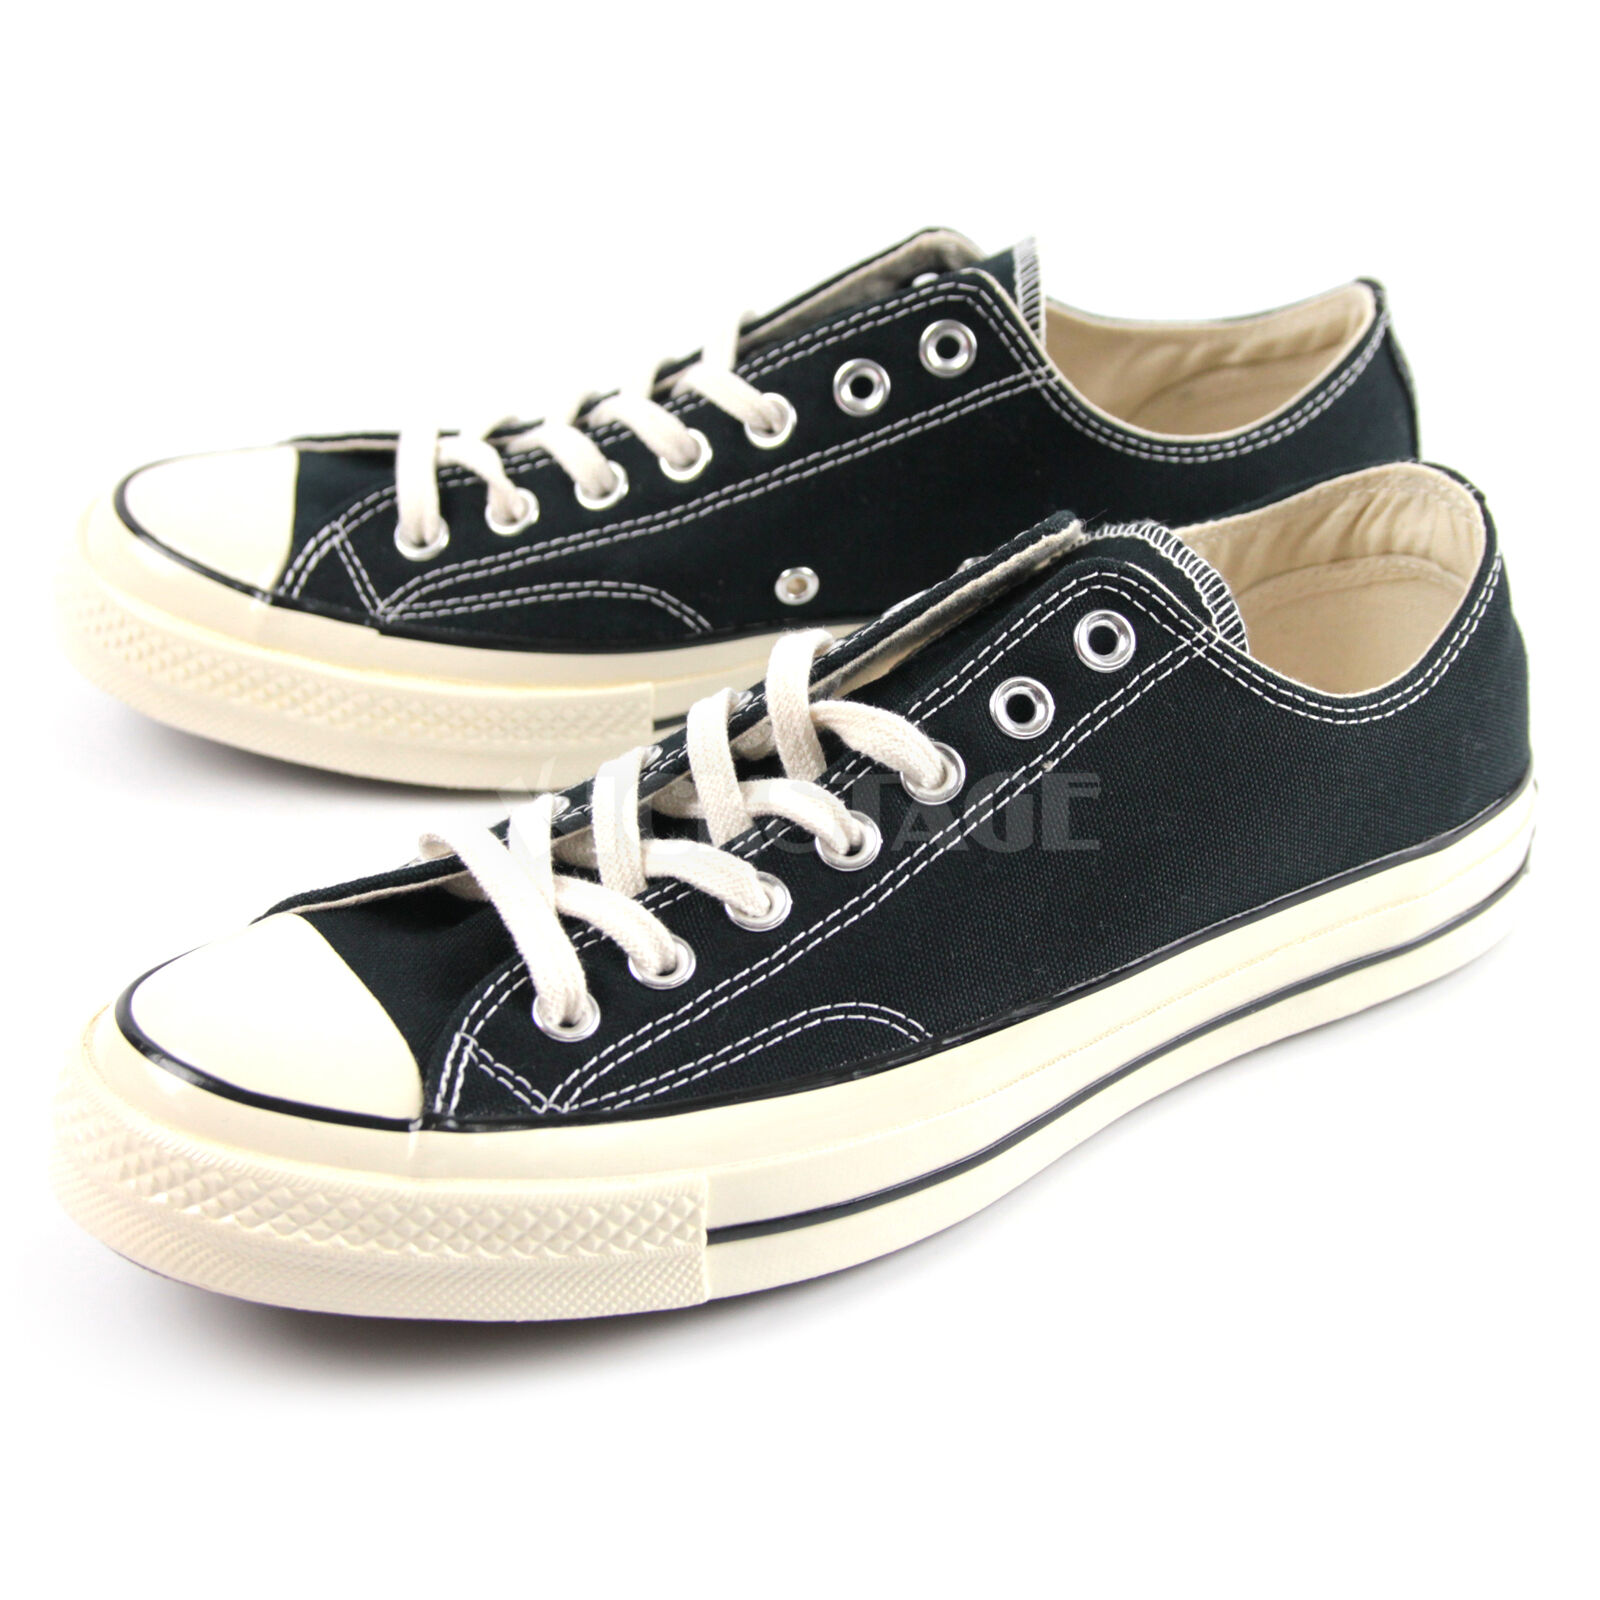 90d81236863d17 Converse Chuck Taylor All Star Low Top 1970s OG Black Triple star Label  144757C